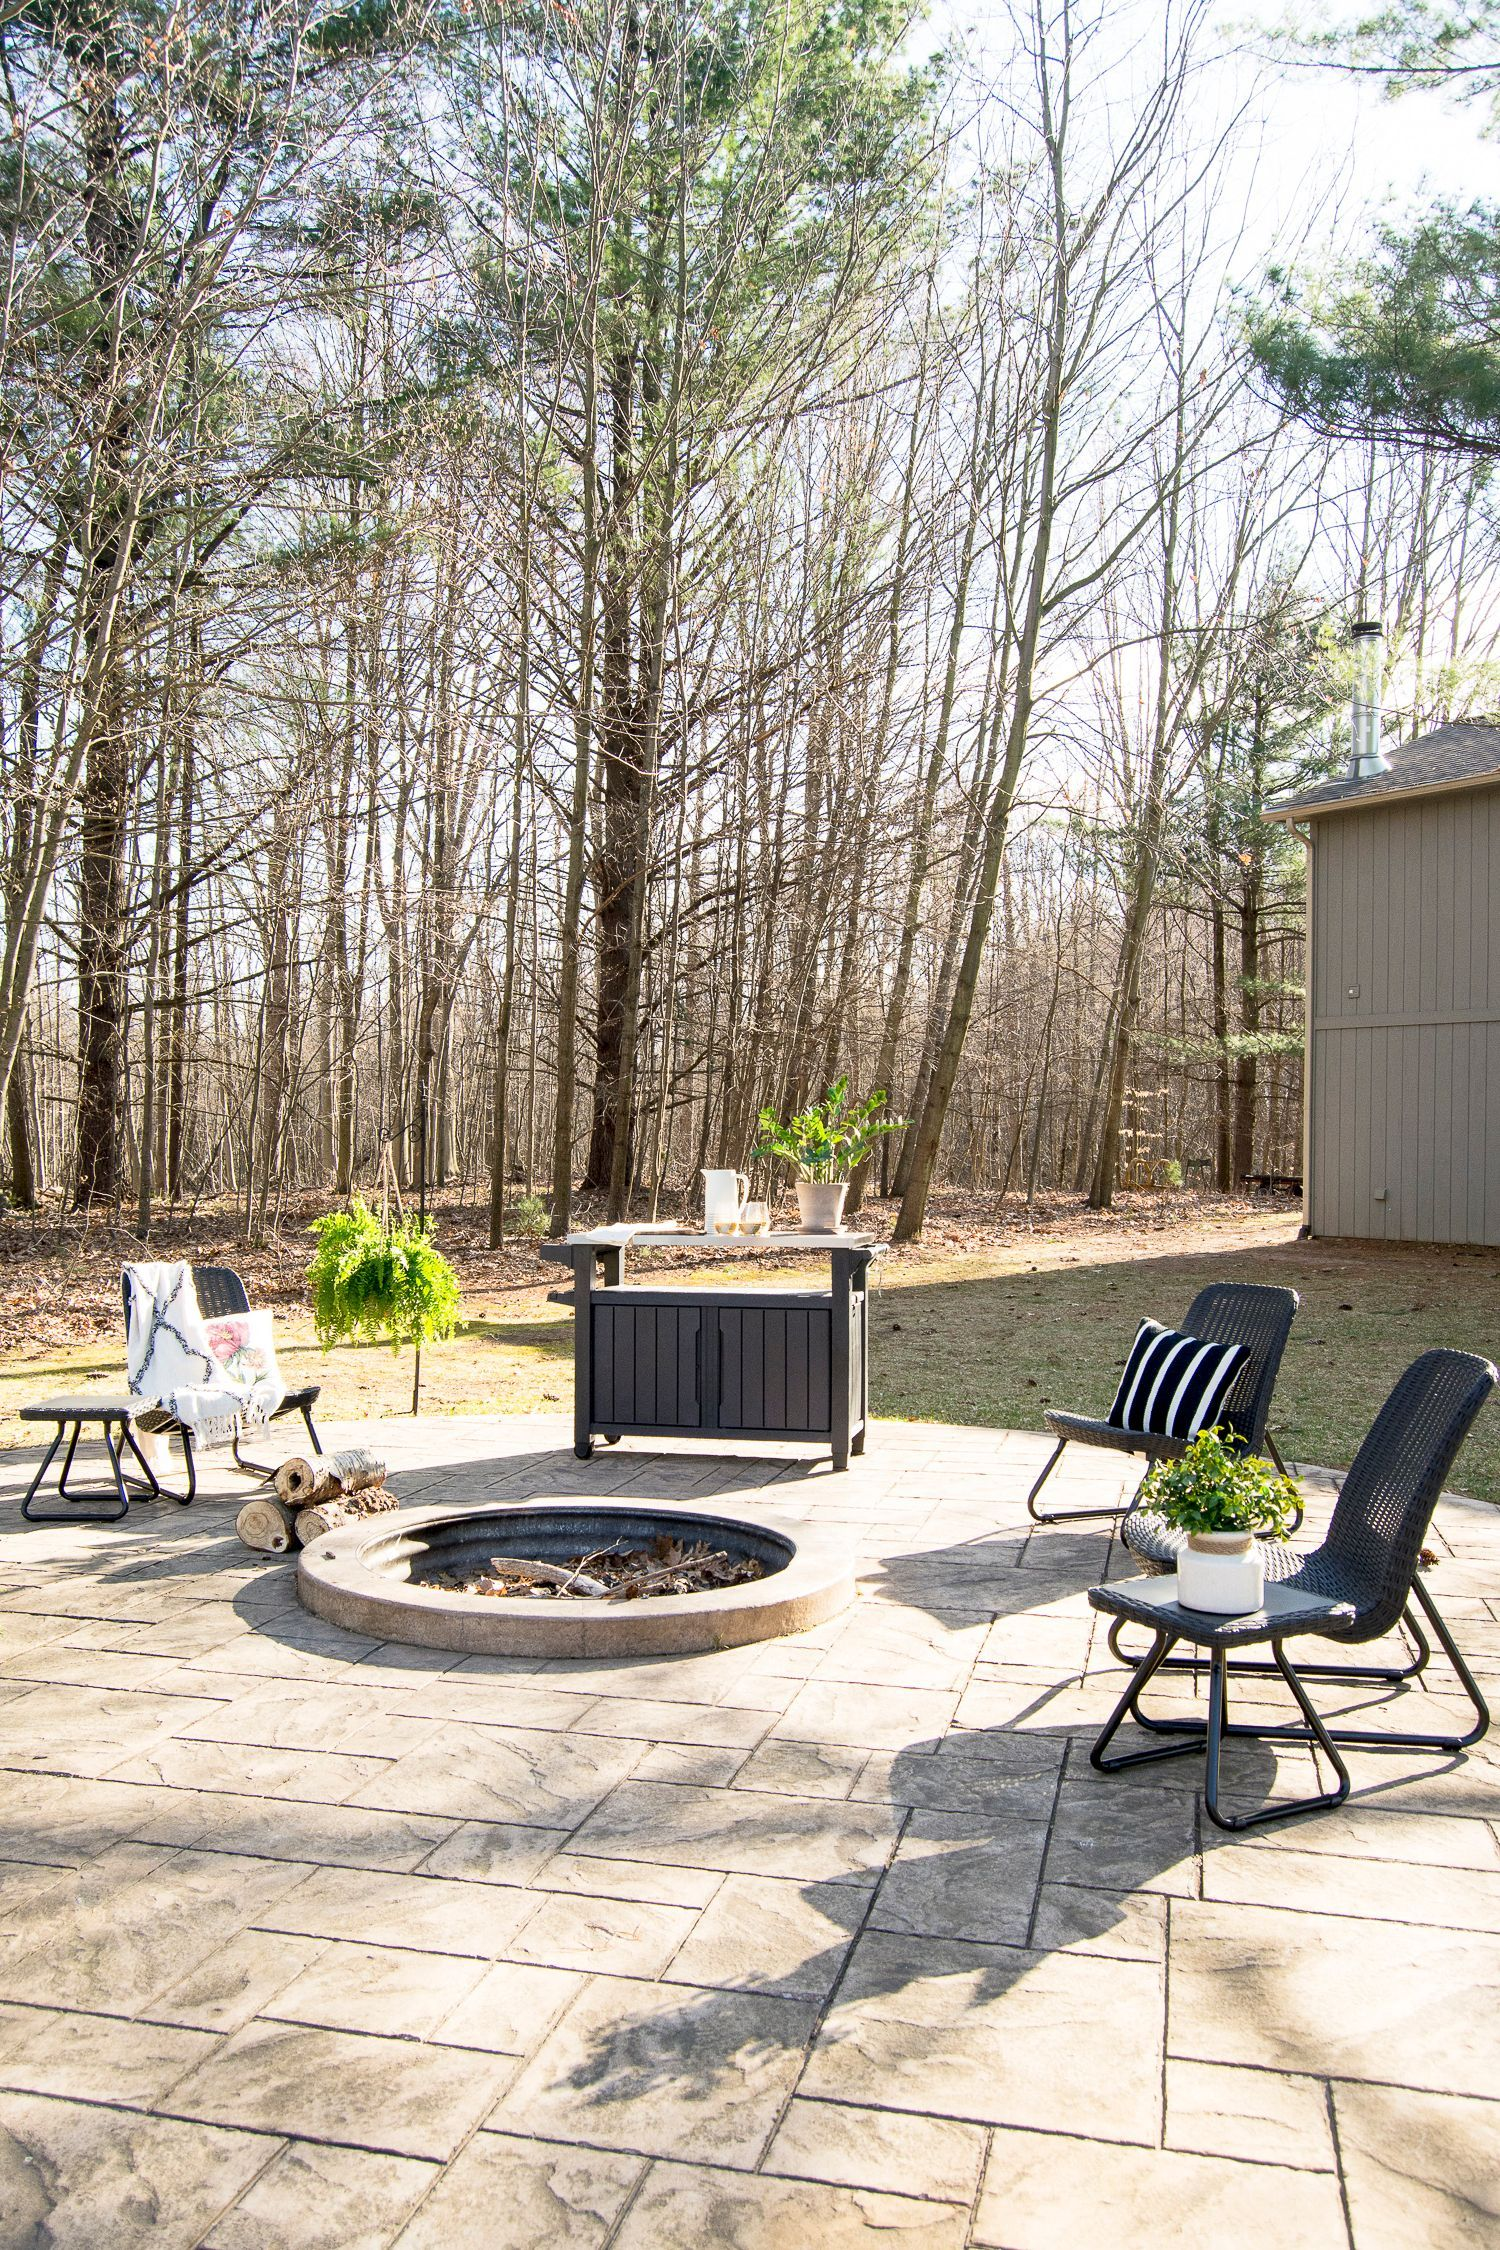 Photo of Inspiration for Backyard Fire Pit Designs